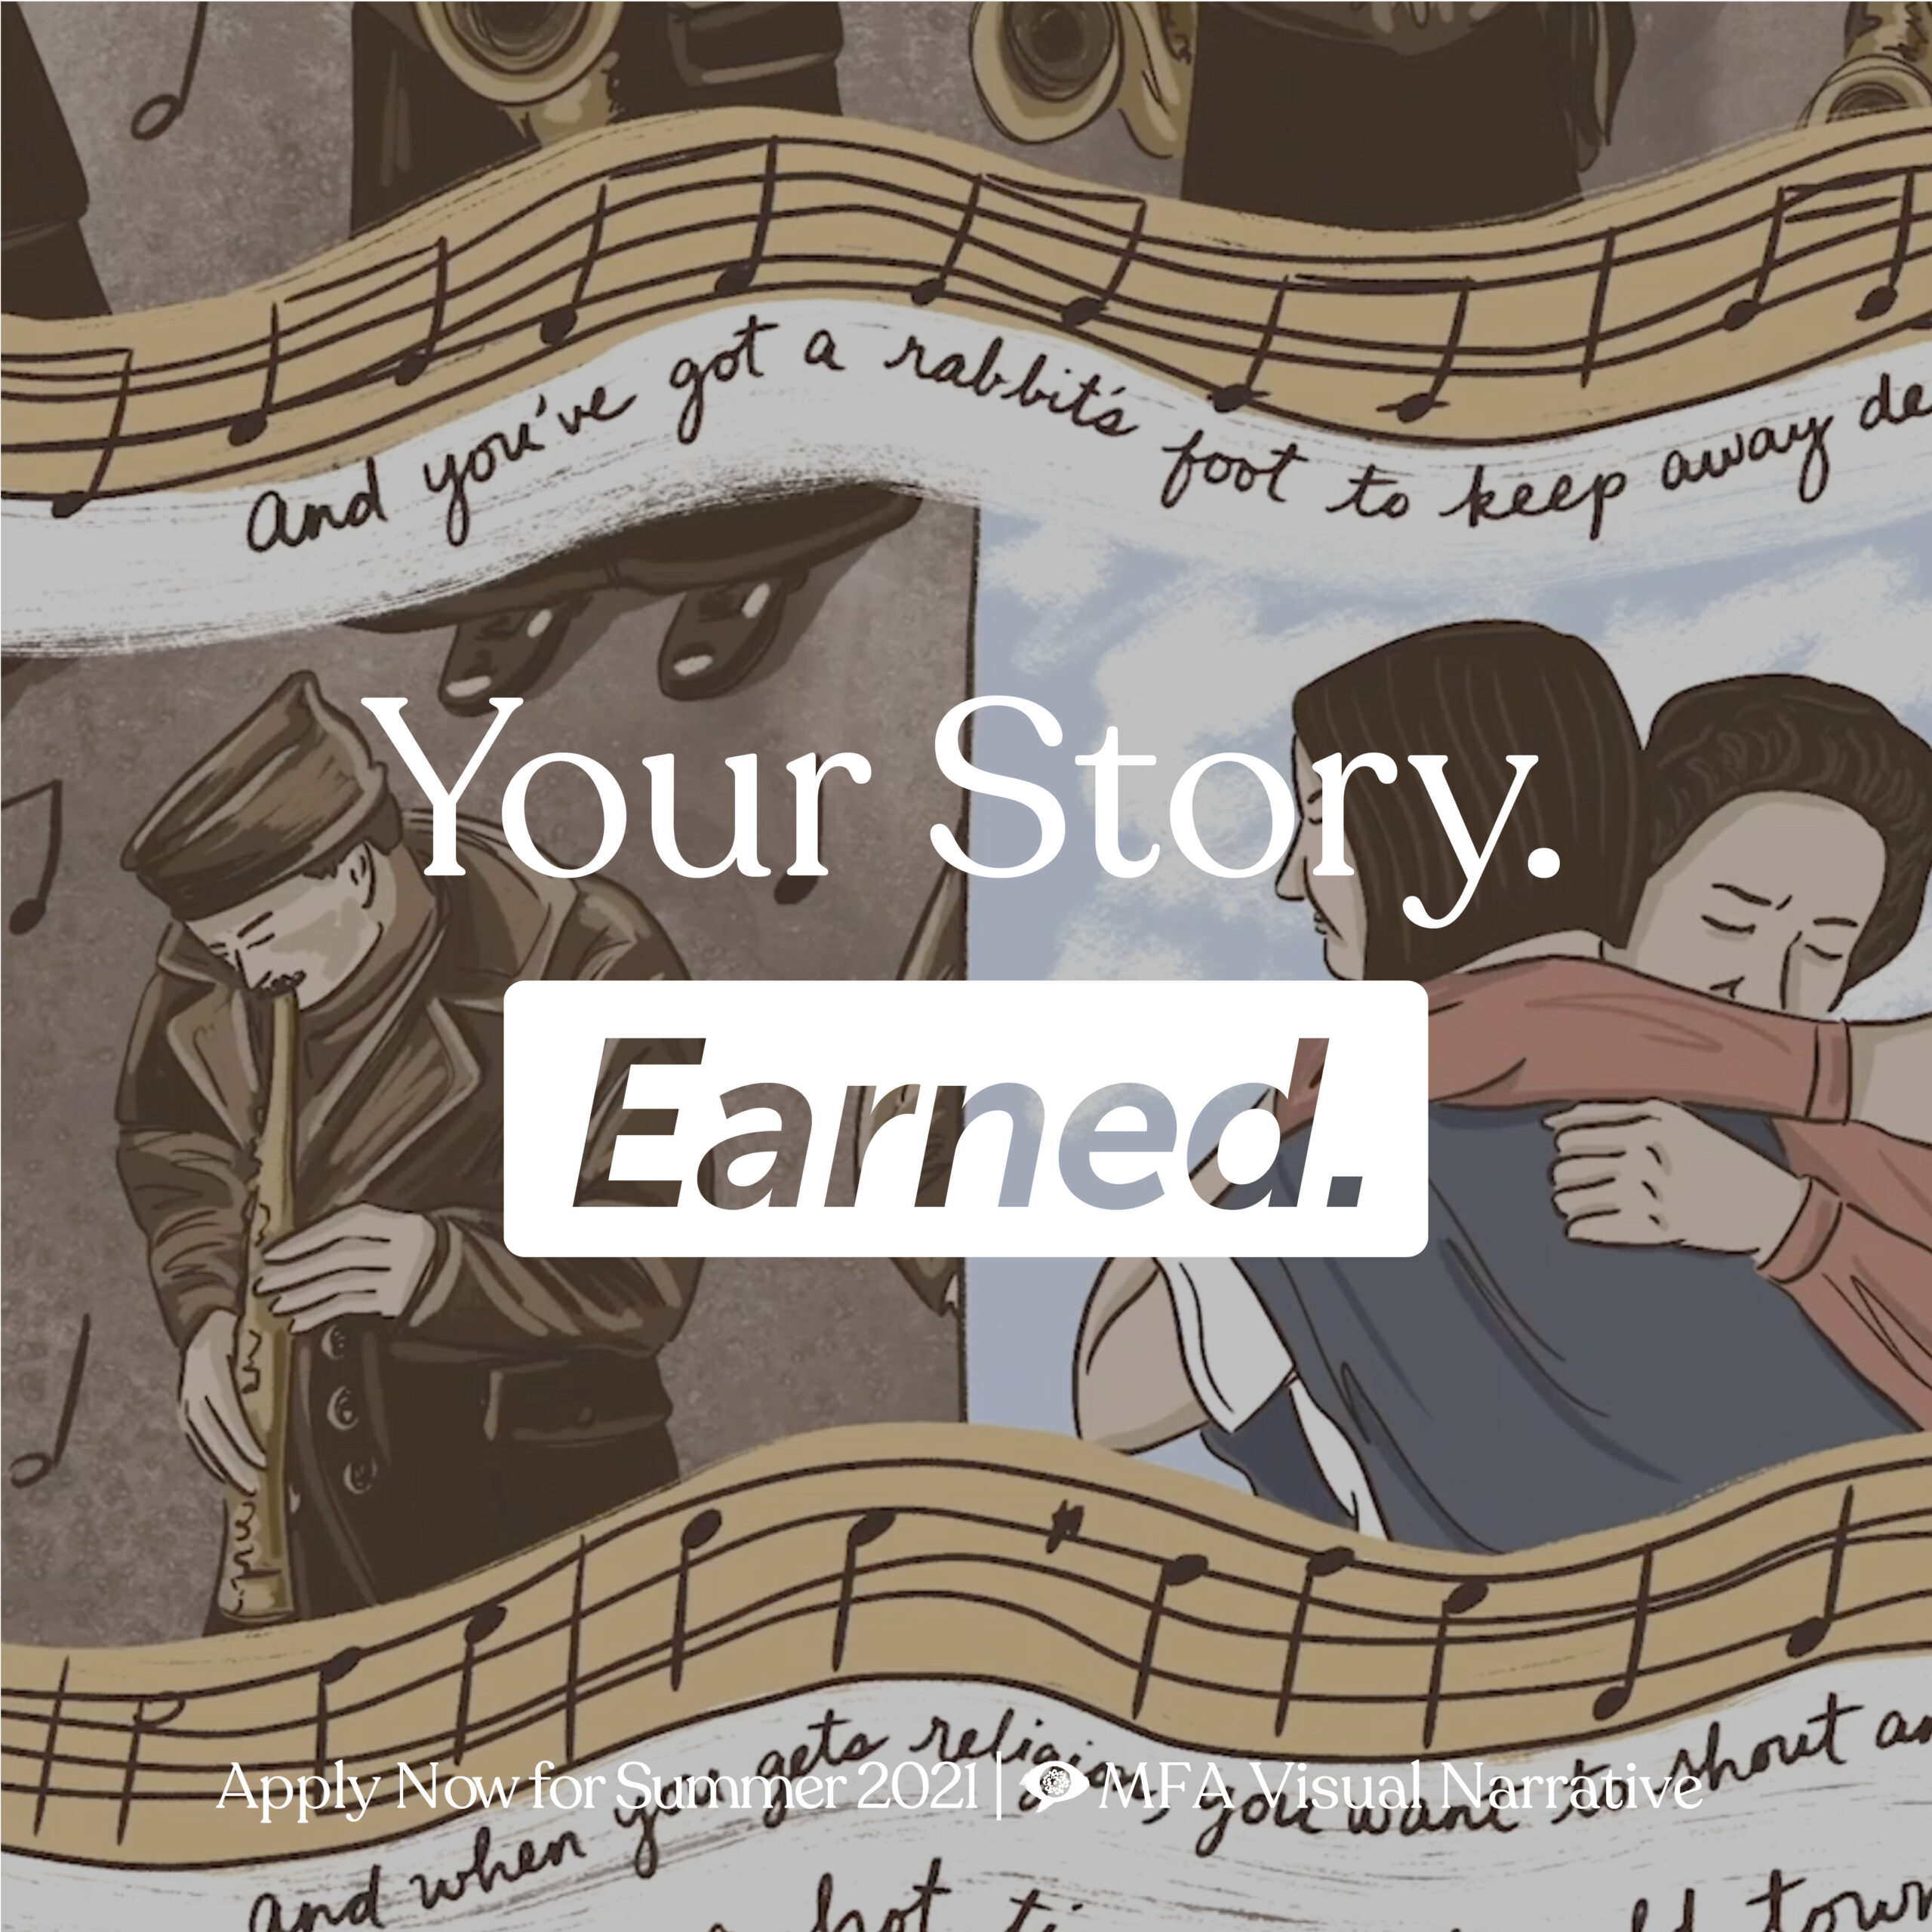 "Illustration with words Your Story Earned"" and a backdrop of people embracing amongst a musical staff with notes dancing across the image."